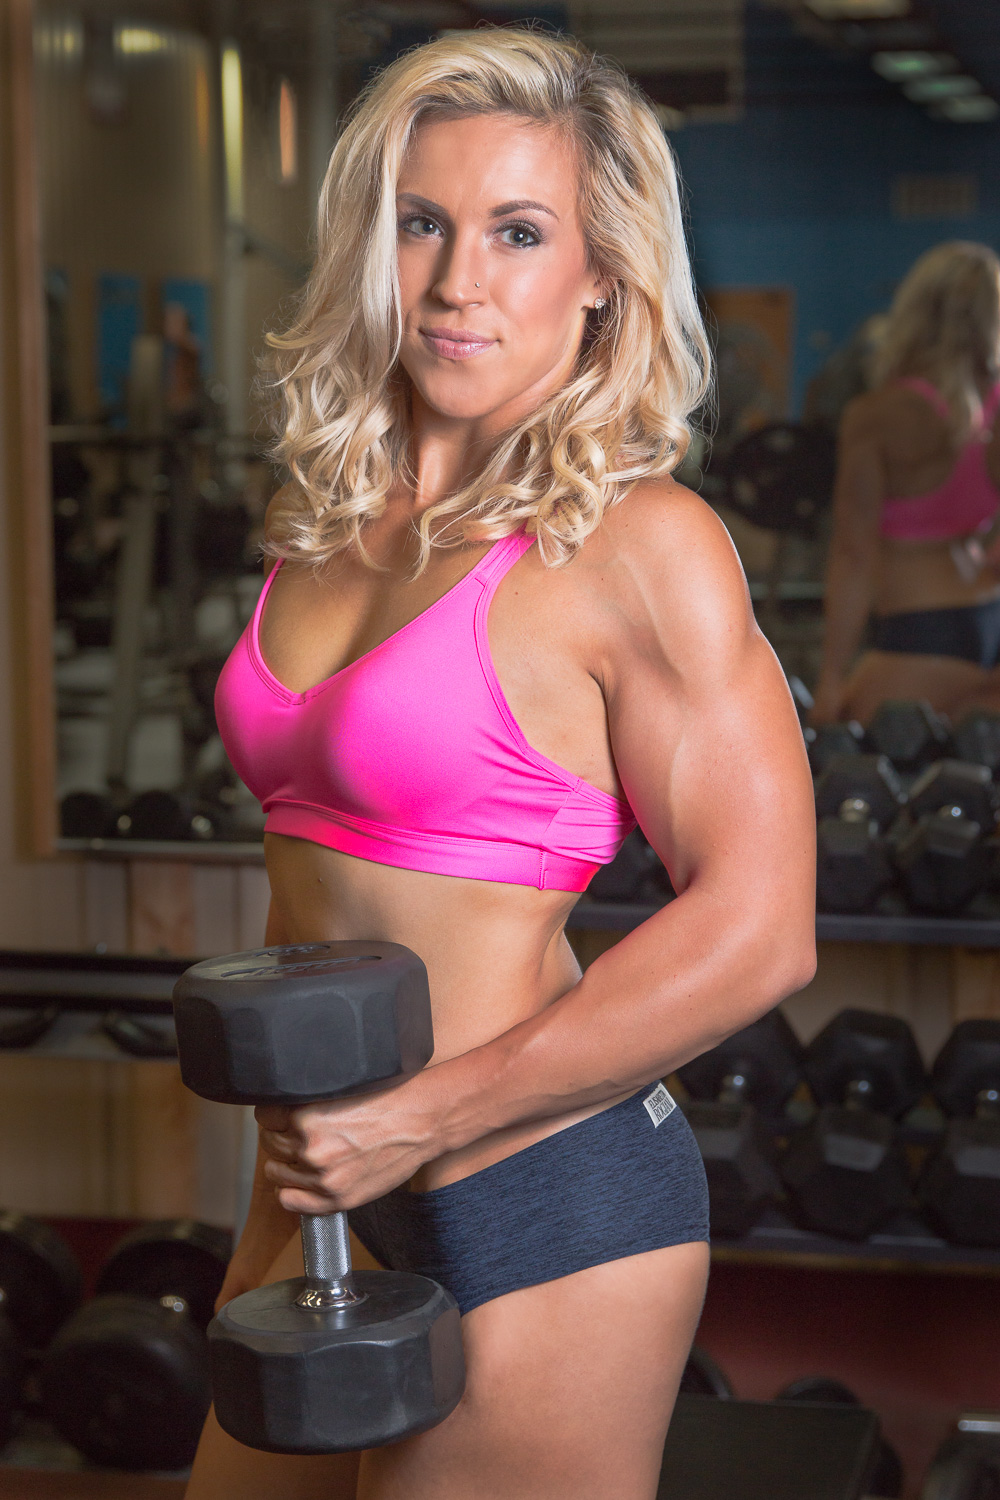 fitness_photography_gym_weights_pink_top.jpg